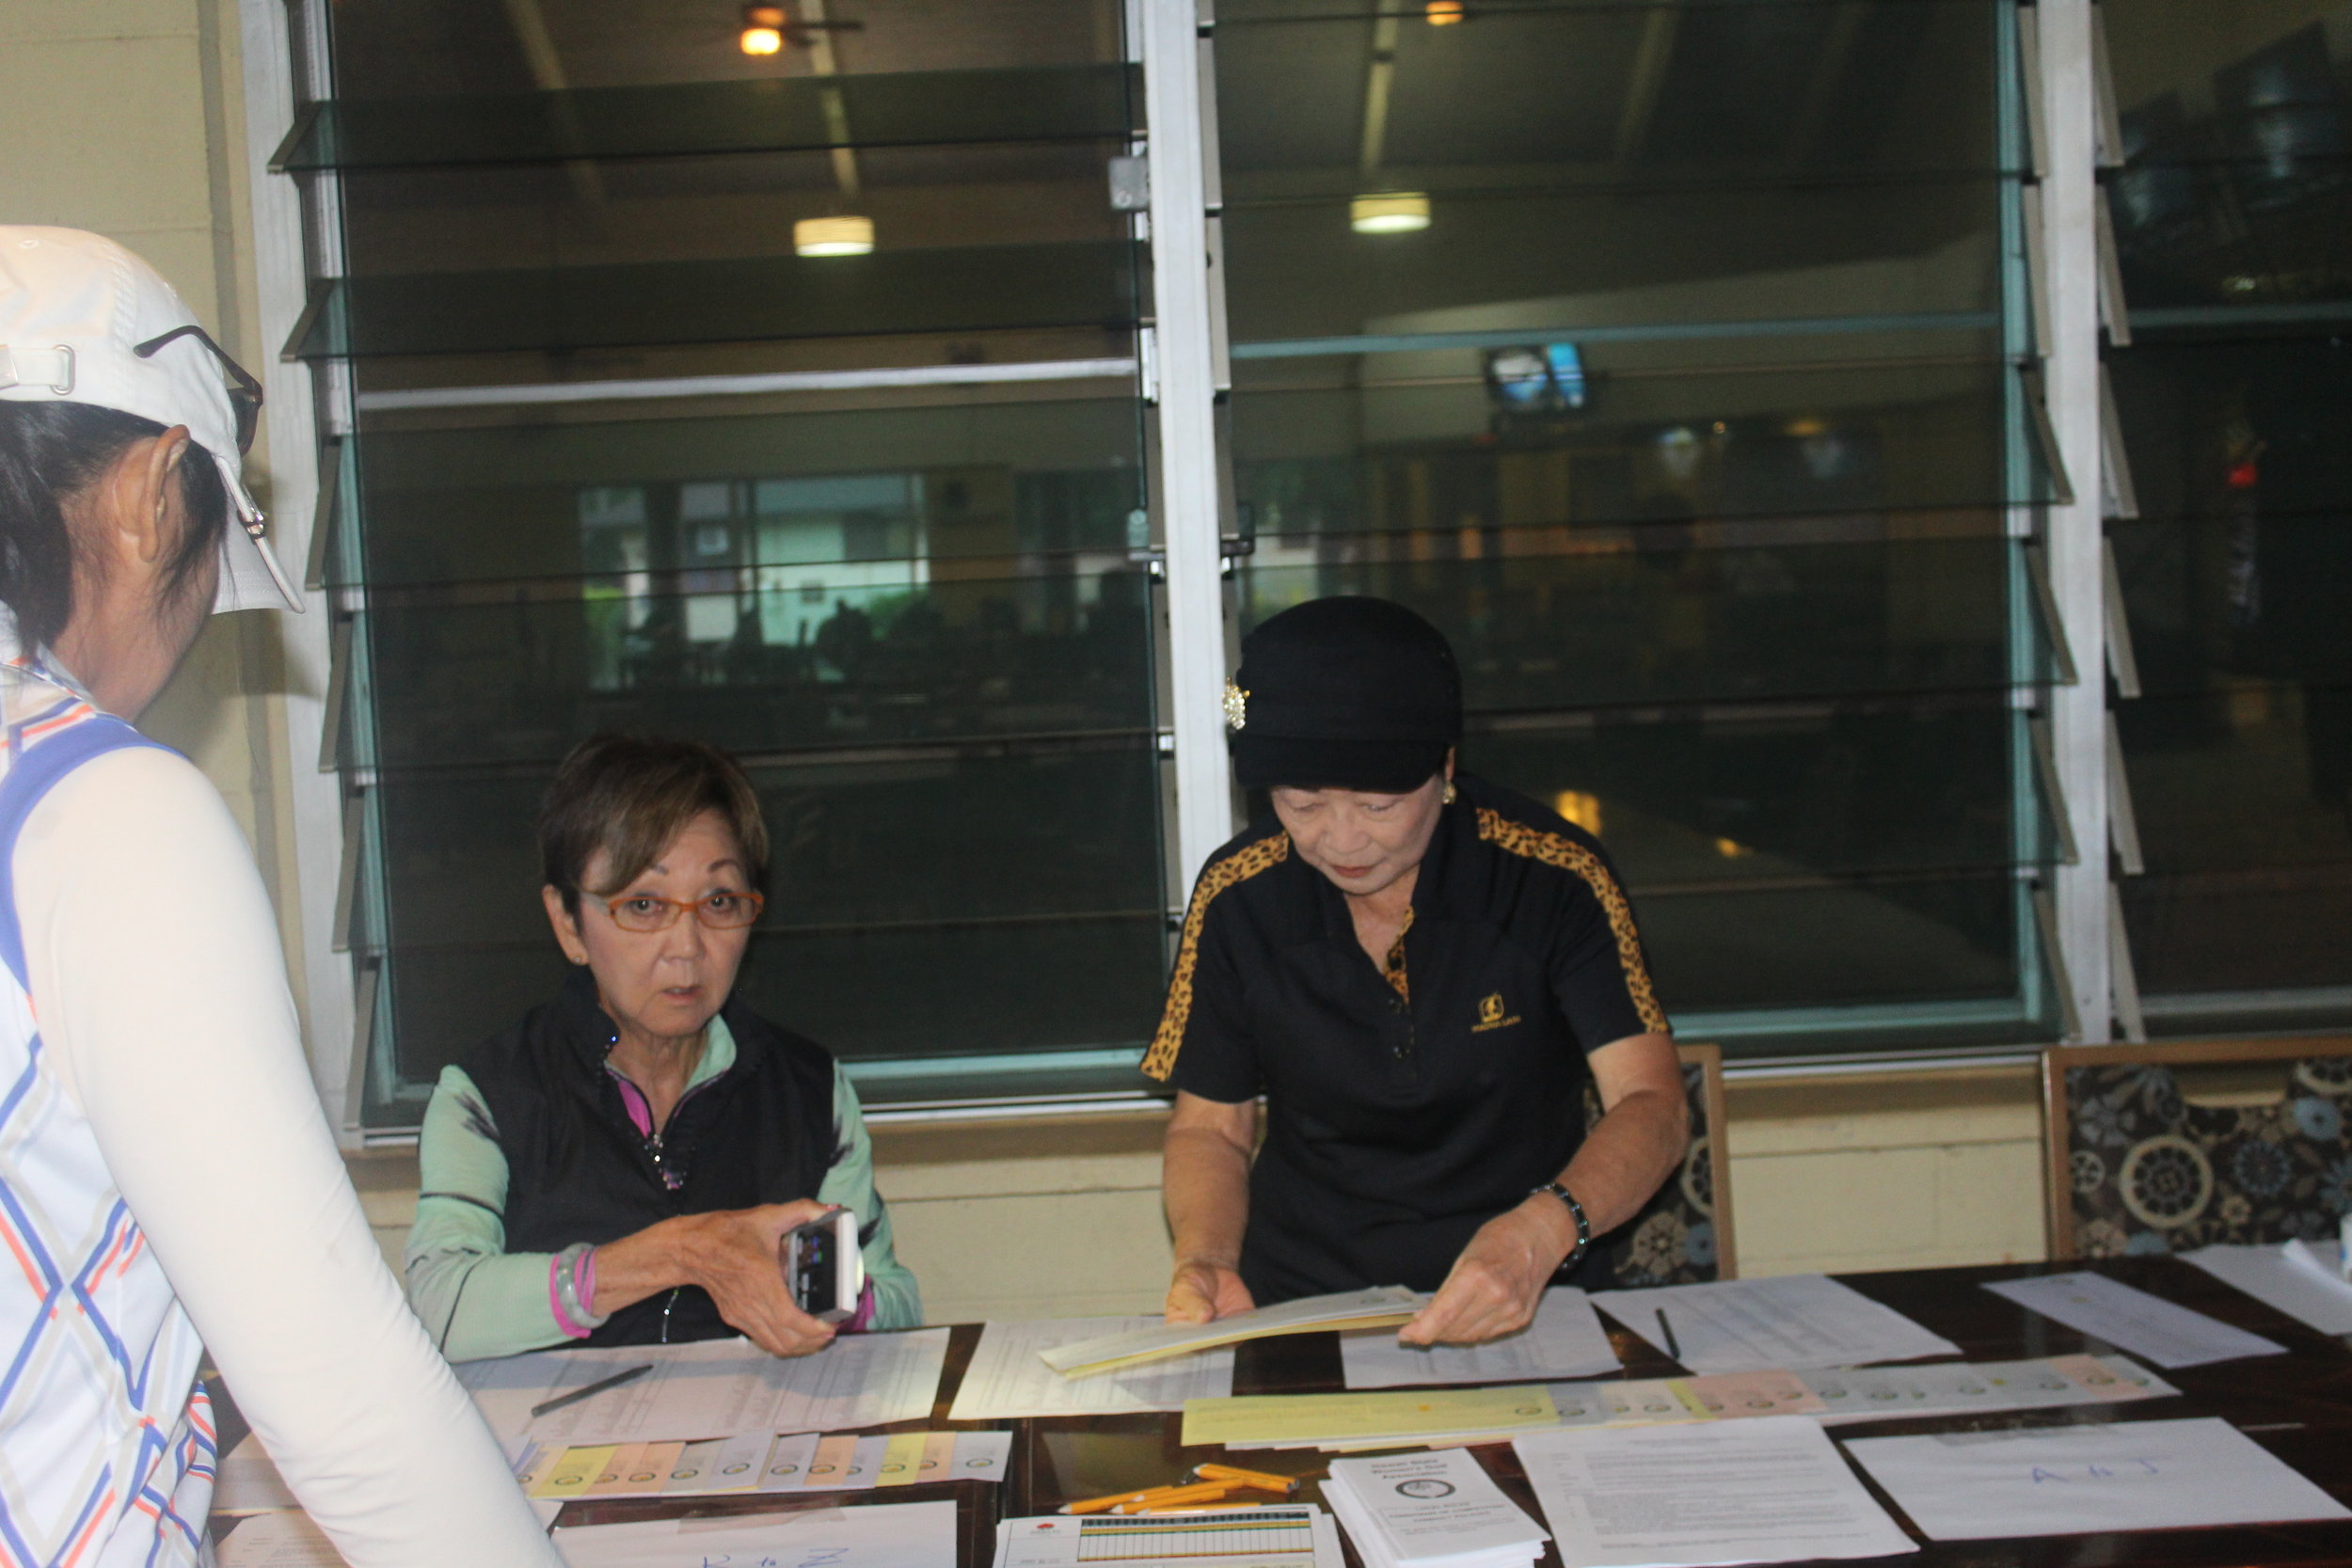 Registration desk with Diane Kawashima and Sheila Kim